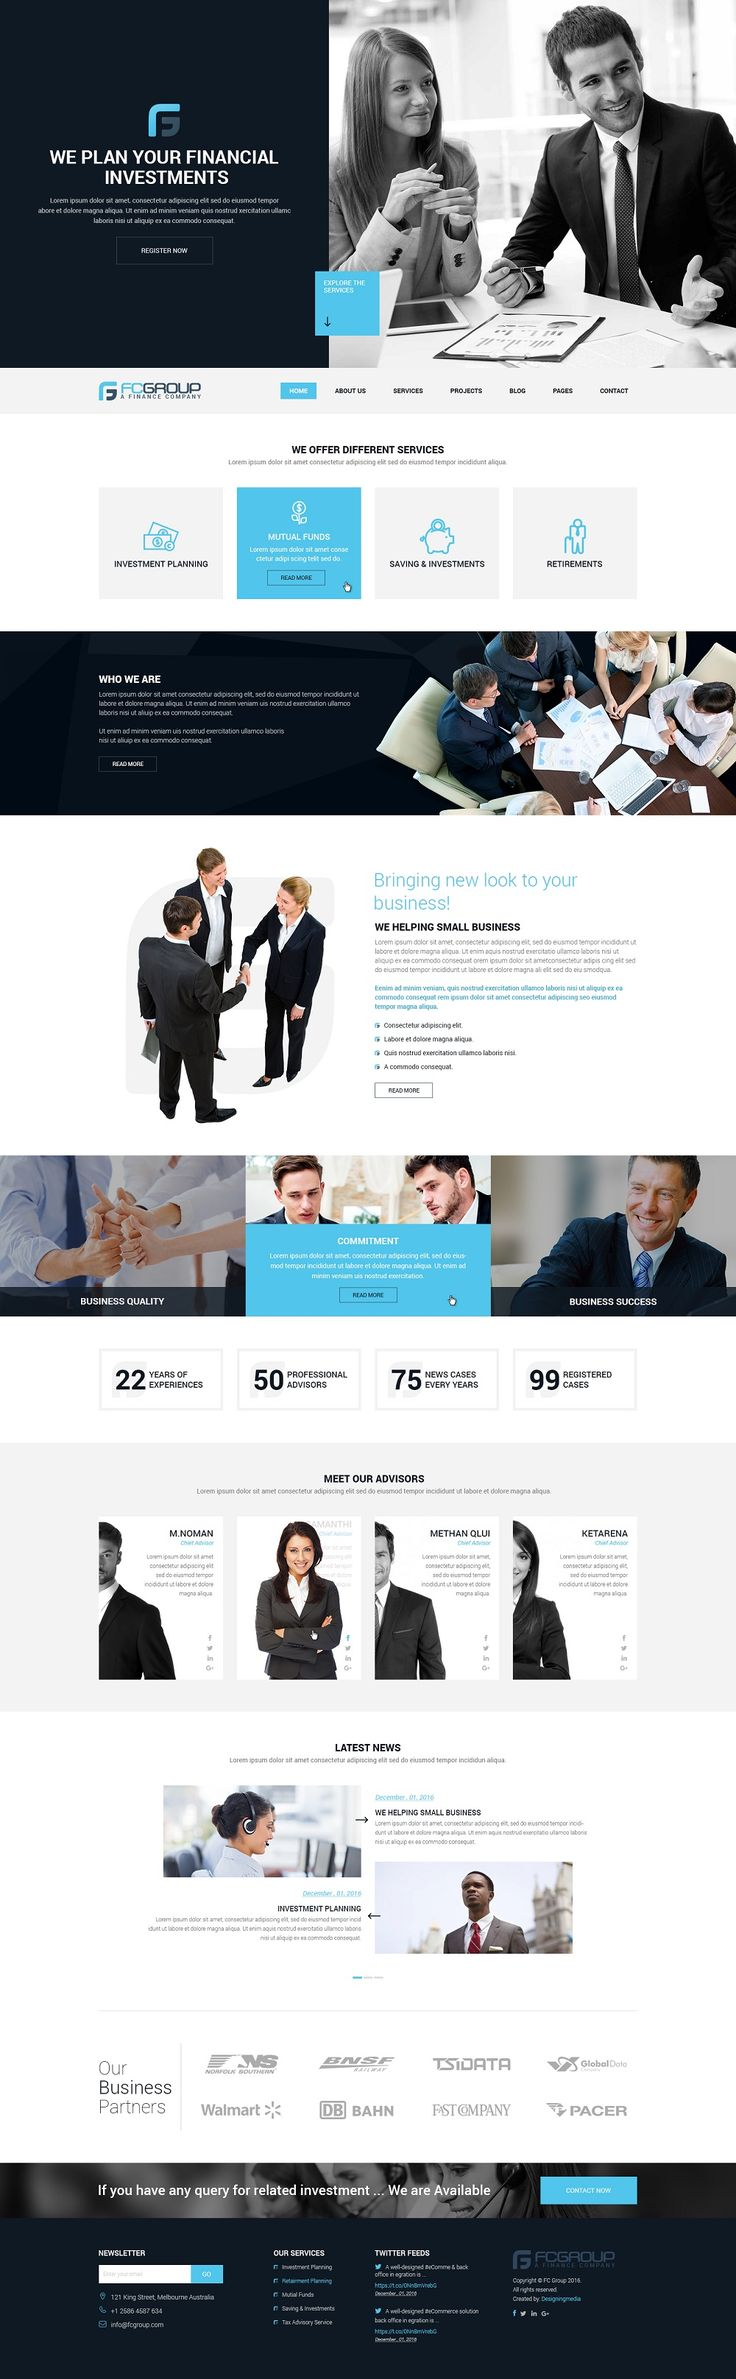 Website Theme for Business / Corporations / Agencies  Check out http://www.imedia.click for more amazing info on all things effective online marketing #FinanceWebsite